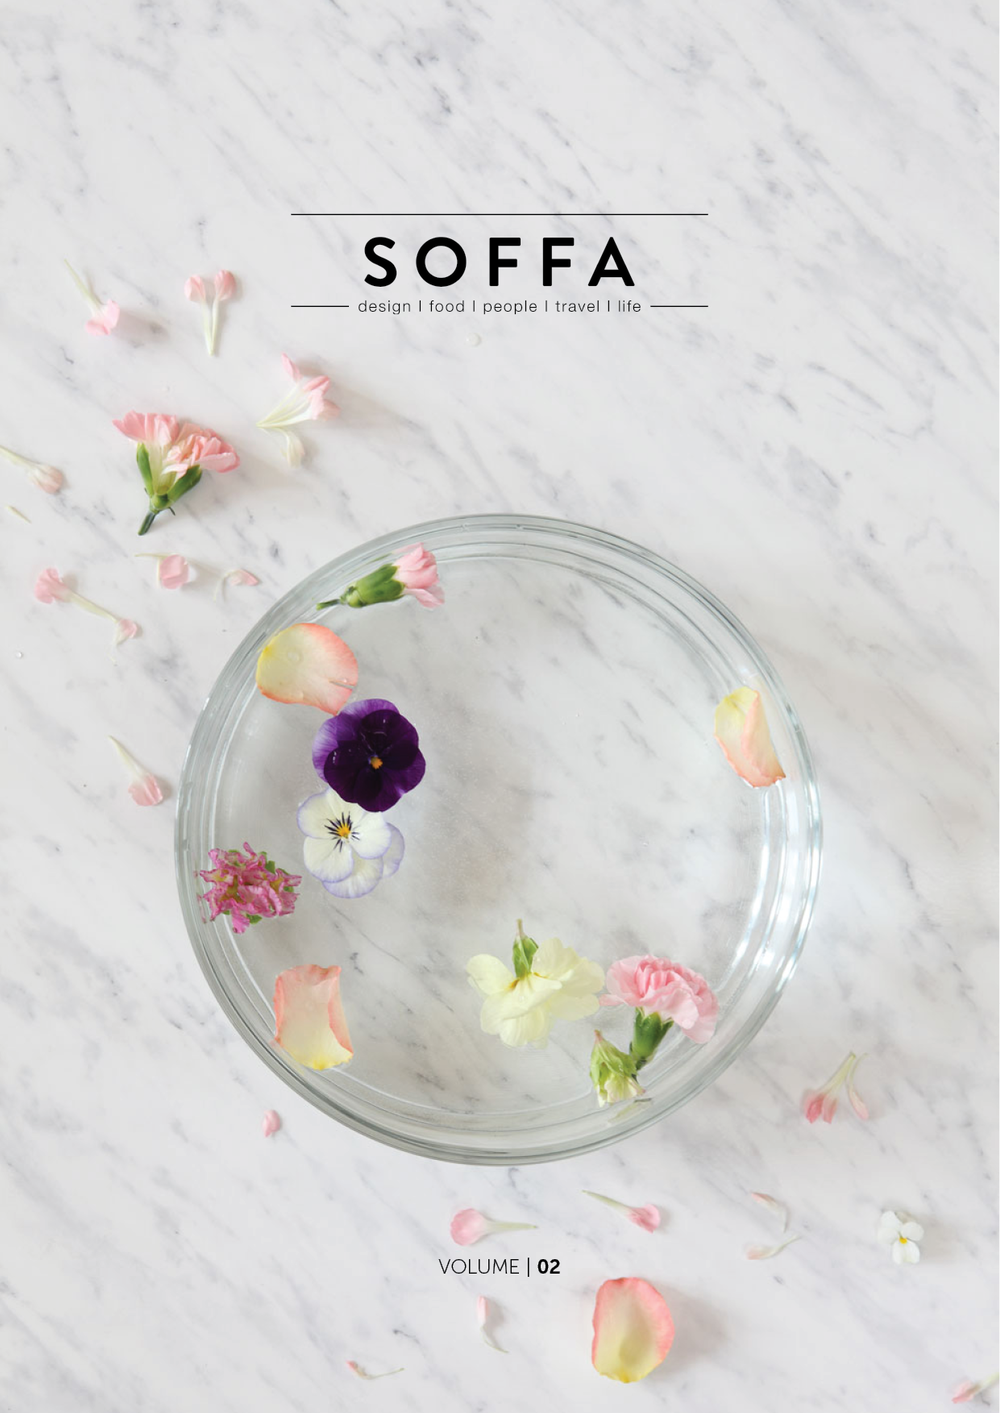 Spring issue of Soffa magazine. • via baraperglova.com